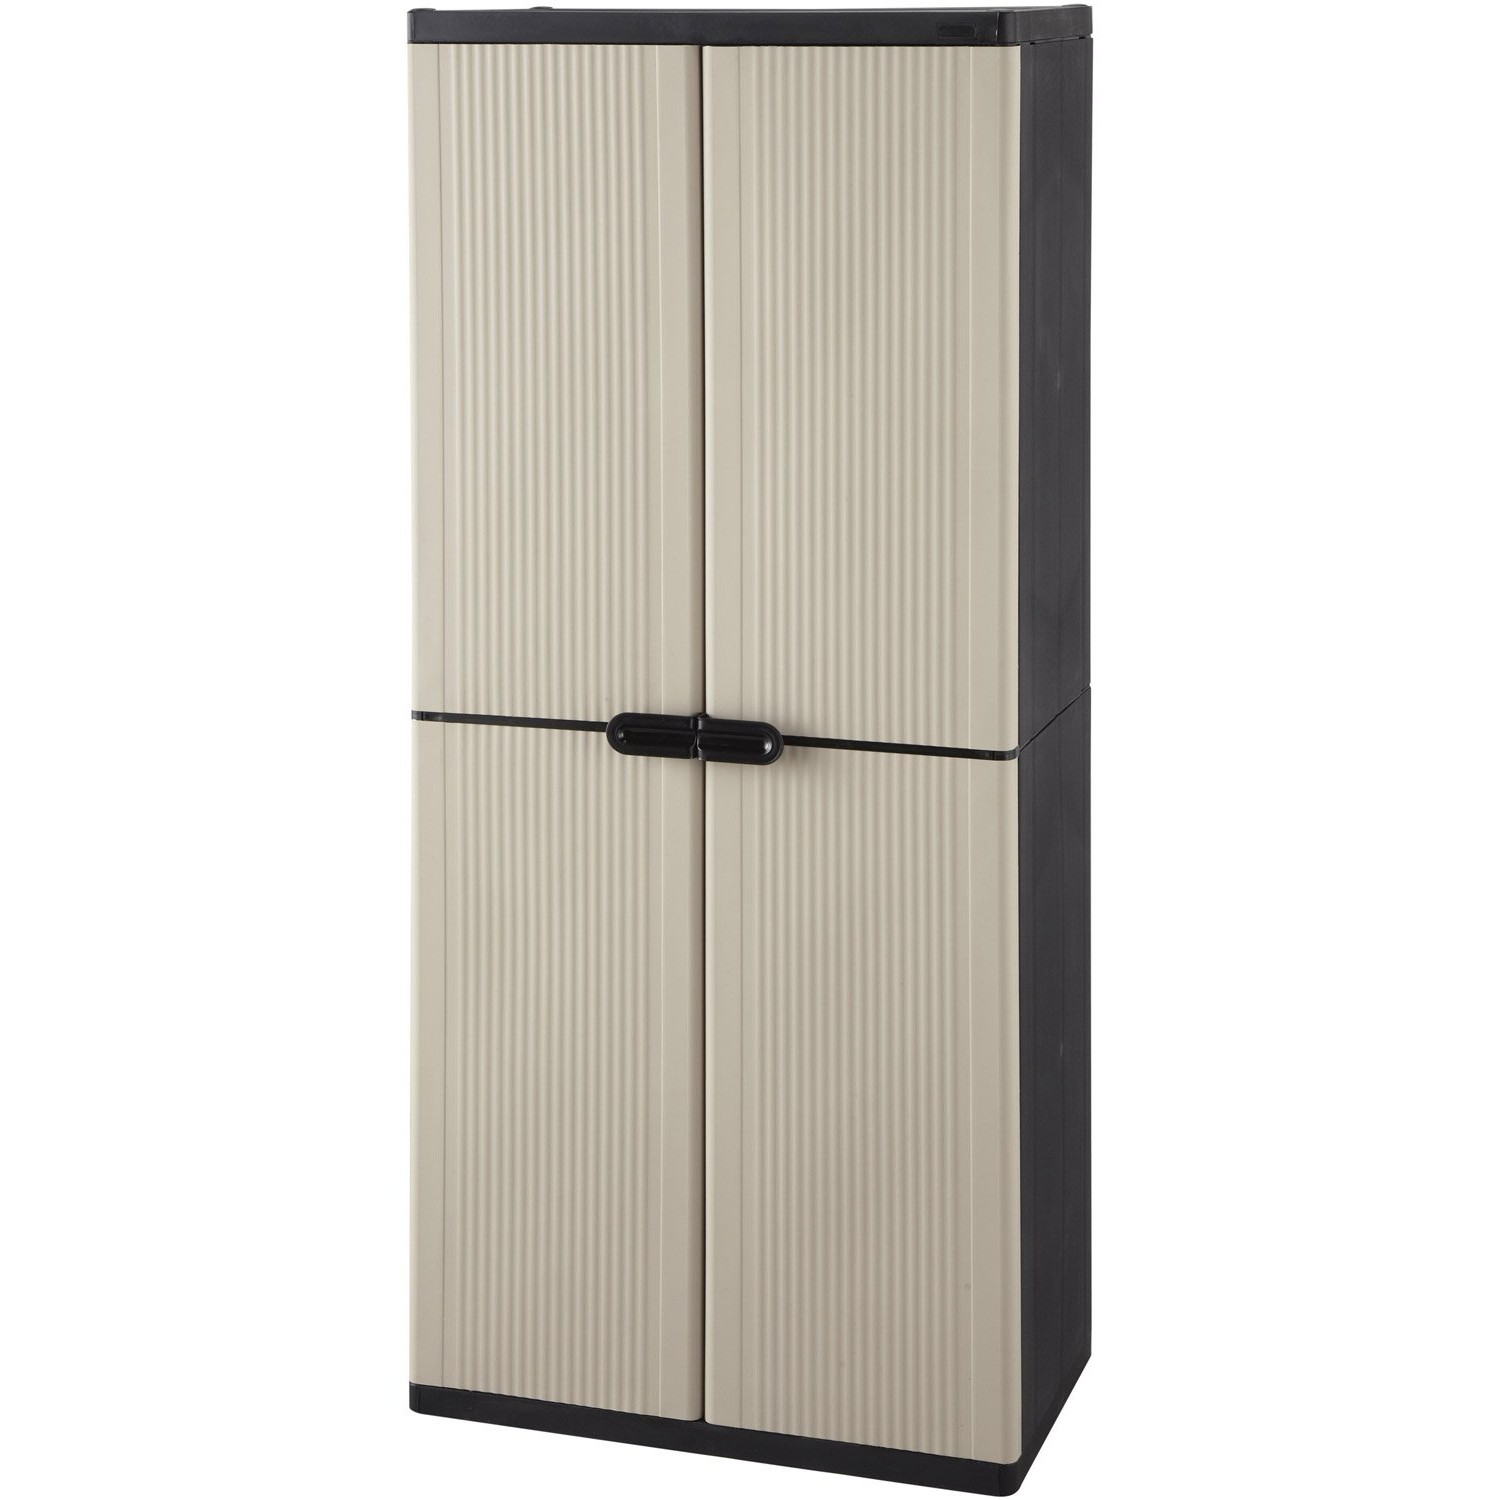 armoire plastique de jardin leroy merlin armoire id es. Black Bedroom Furniture Sets. Home Design Ideas